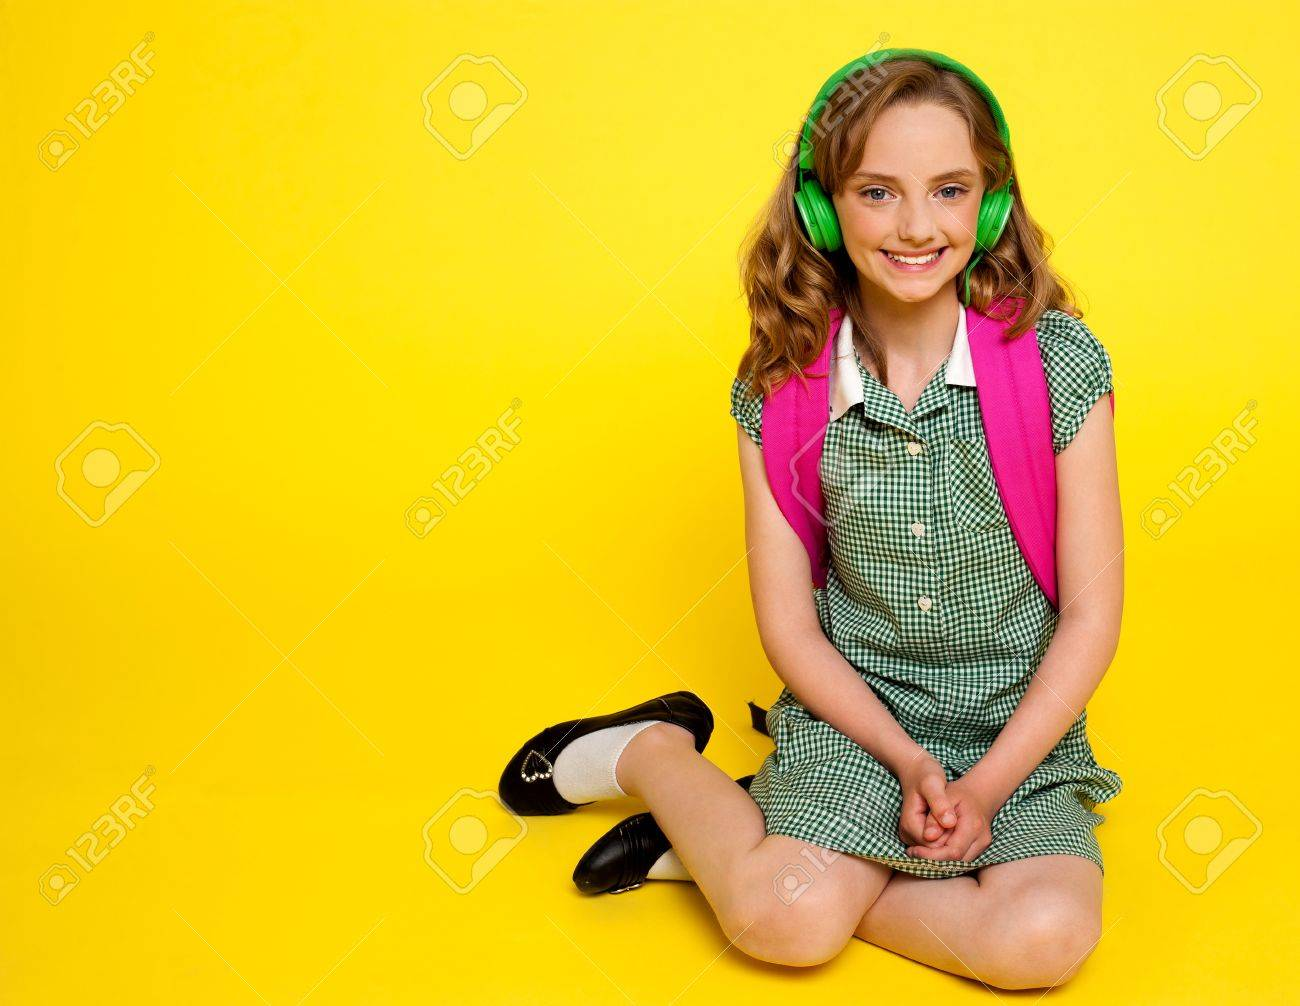 Pretty girl kid listening to music. Seated on floor. All on yellow background Stock Photo - 14337026